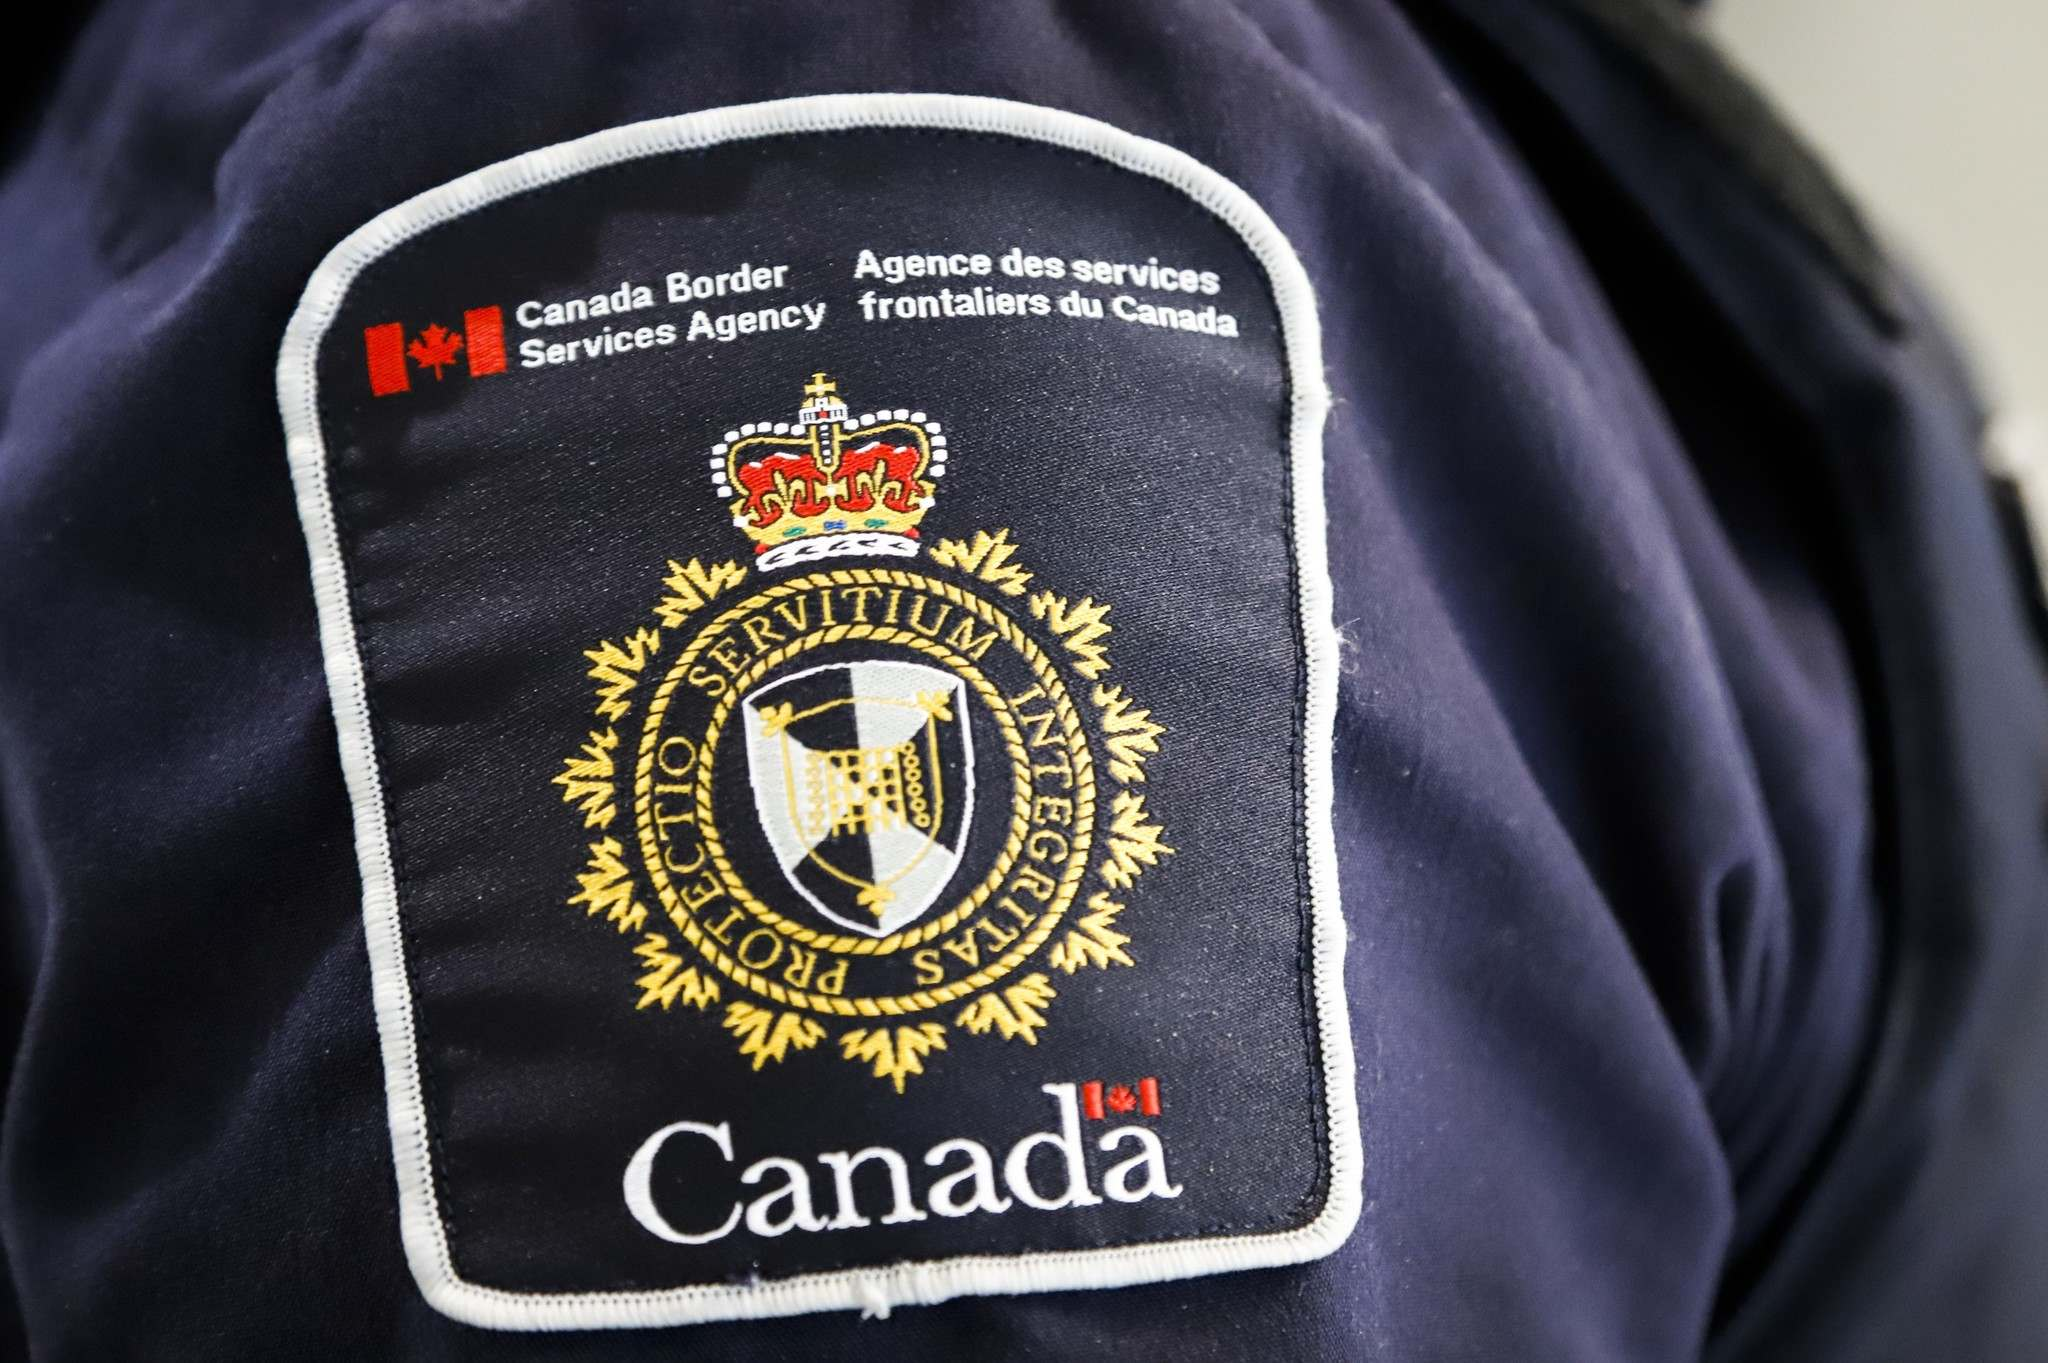 Manitoba RCMP receives a list each day of people who have crossed the border, along with a suggested check-in schedule. (Jeff McIntosh / The Canadian Press files)